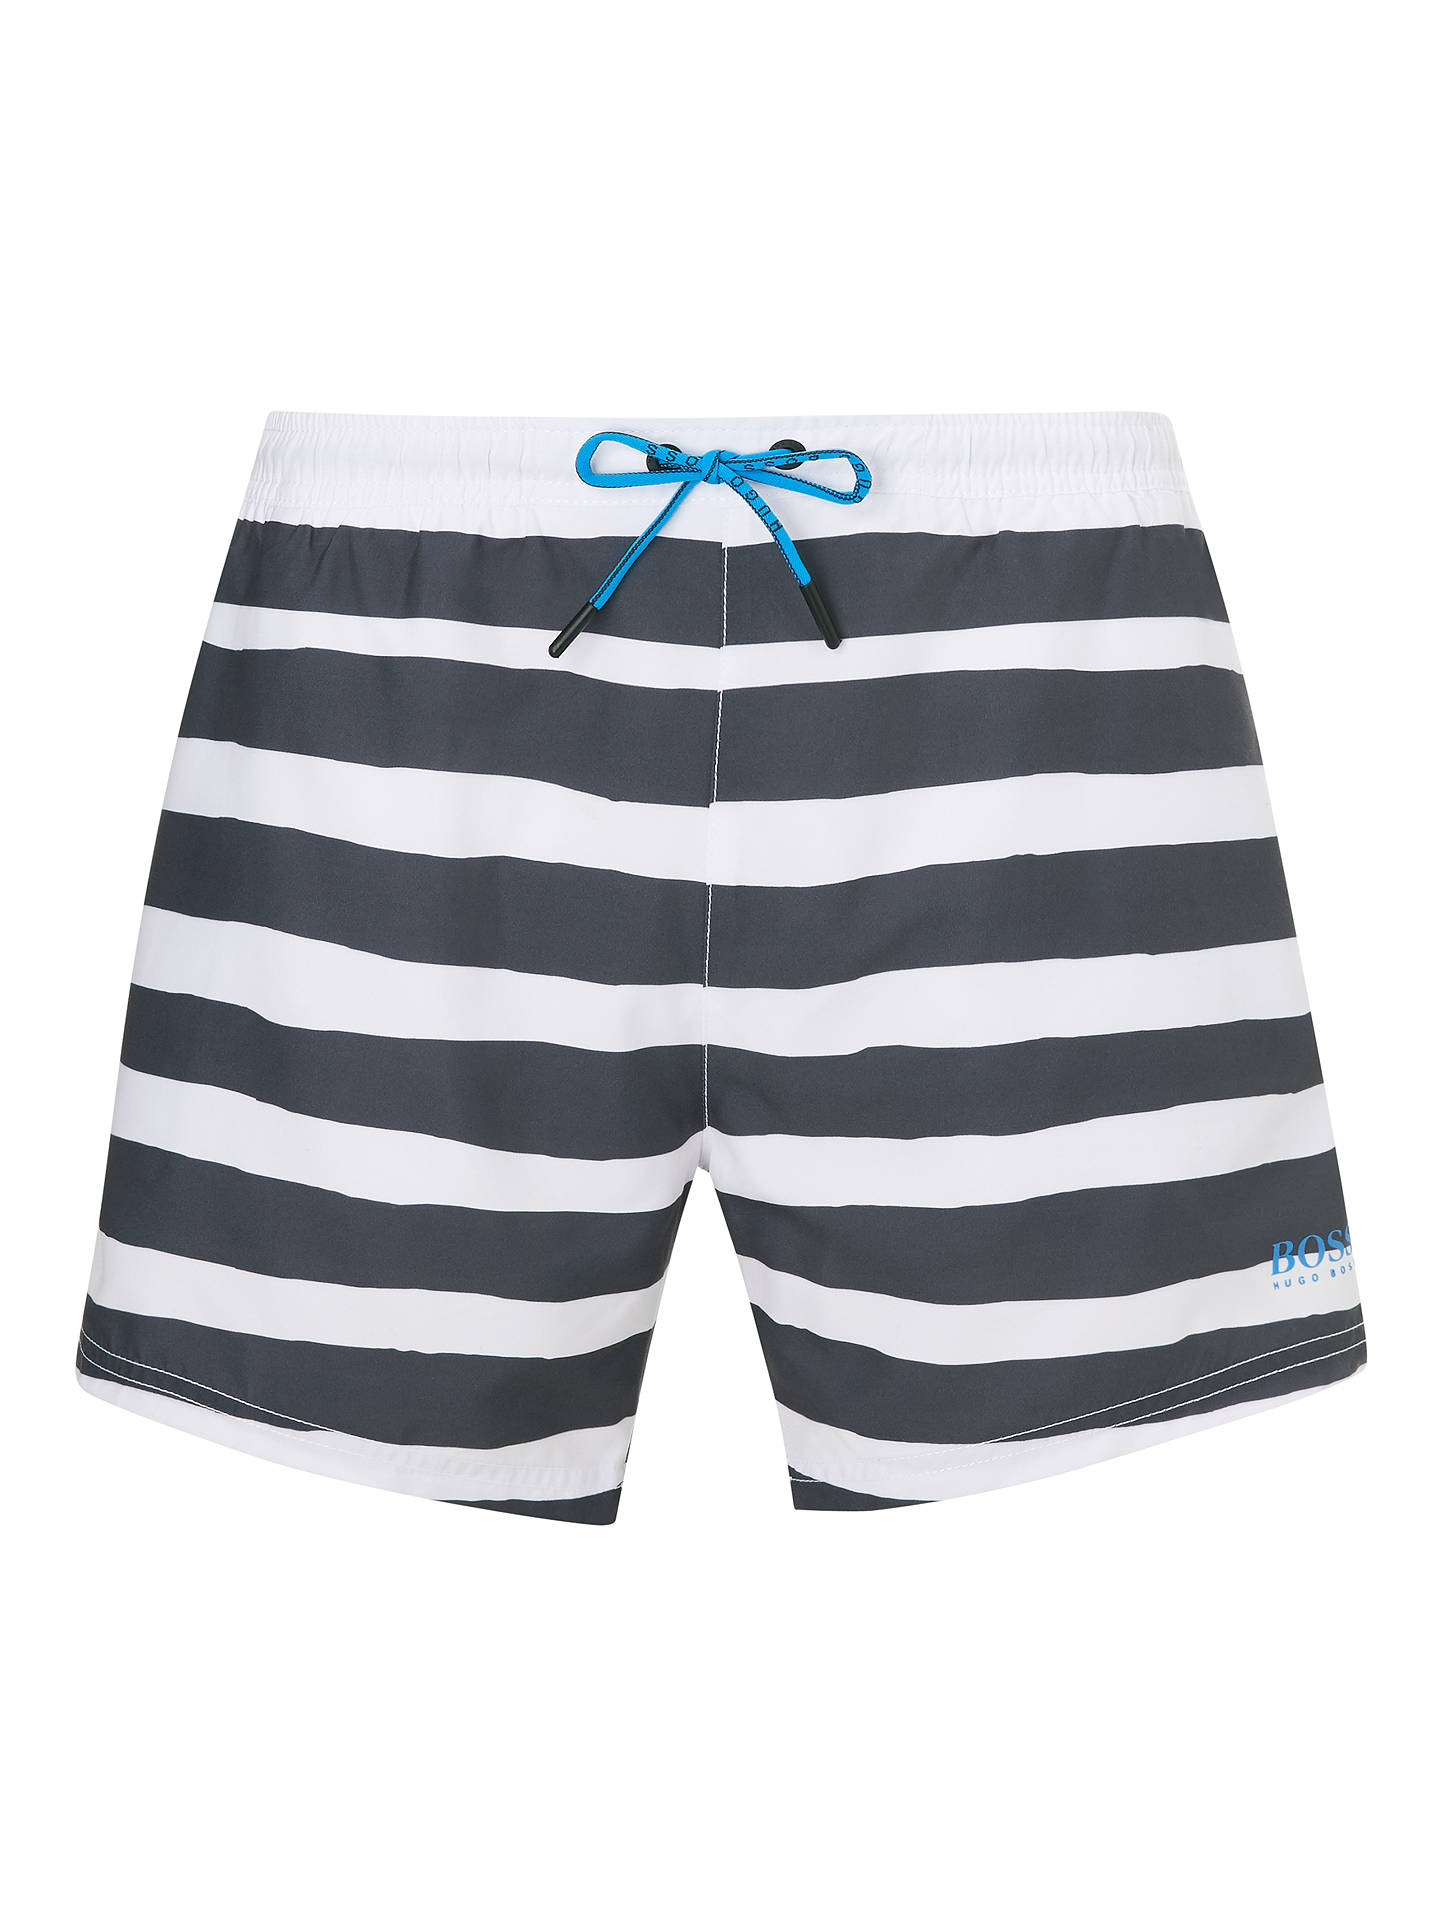 33c9330d Buy HUGO BOSS Scorpion Swim Shorts, Multi, S Online at johnlewis.com ...